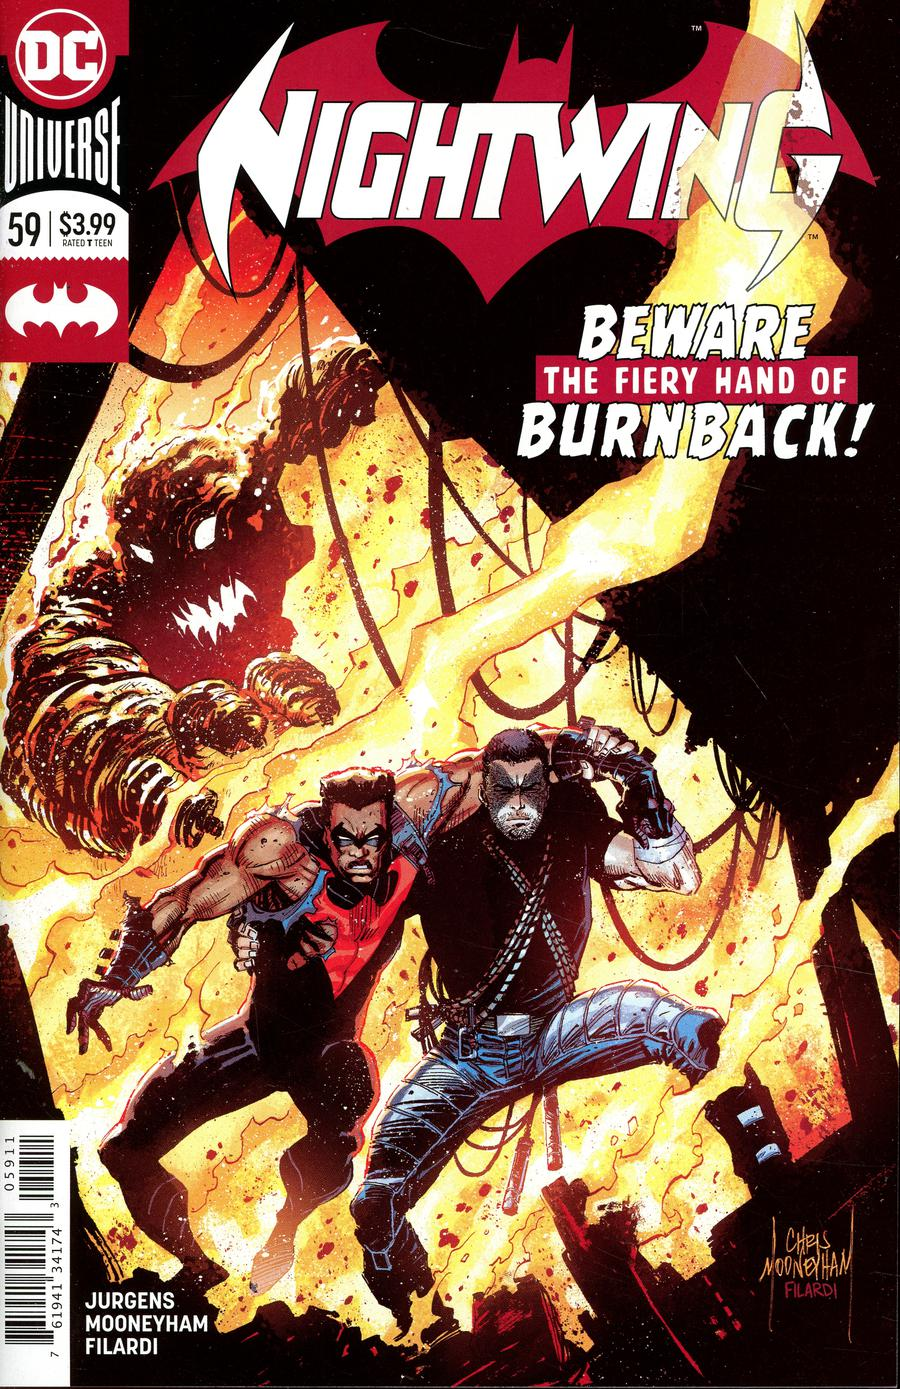 Nightwing Vol 4 #59 Cover A Regular Chris Mooneyham Cover